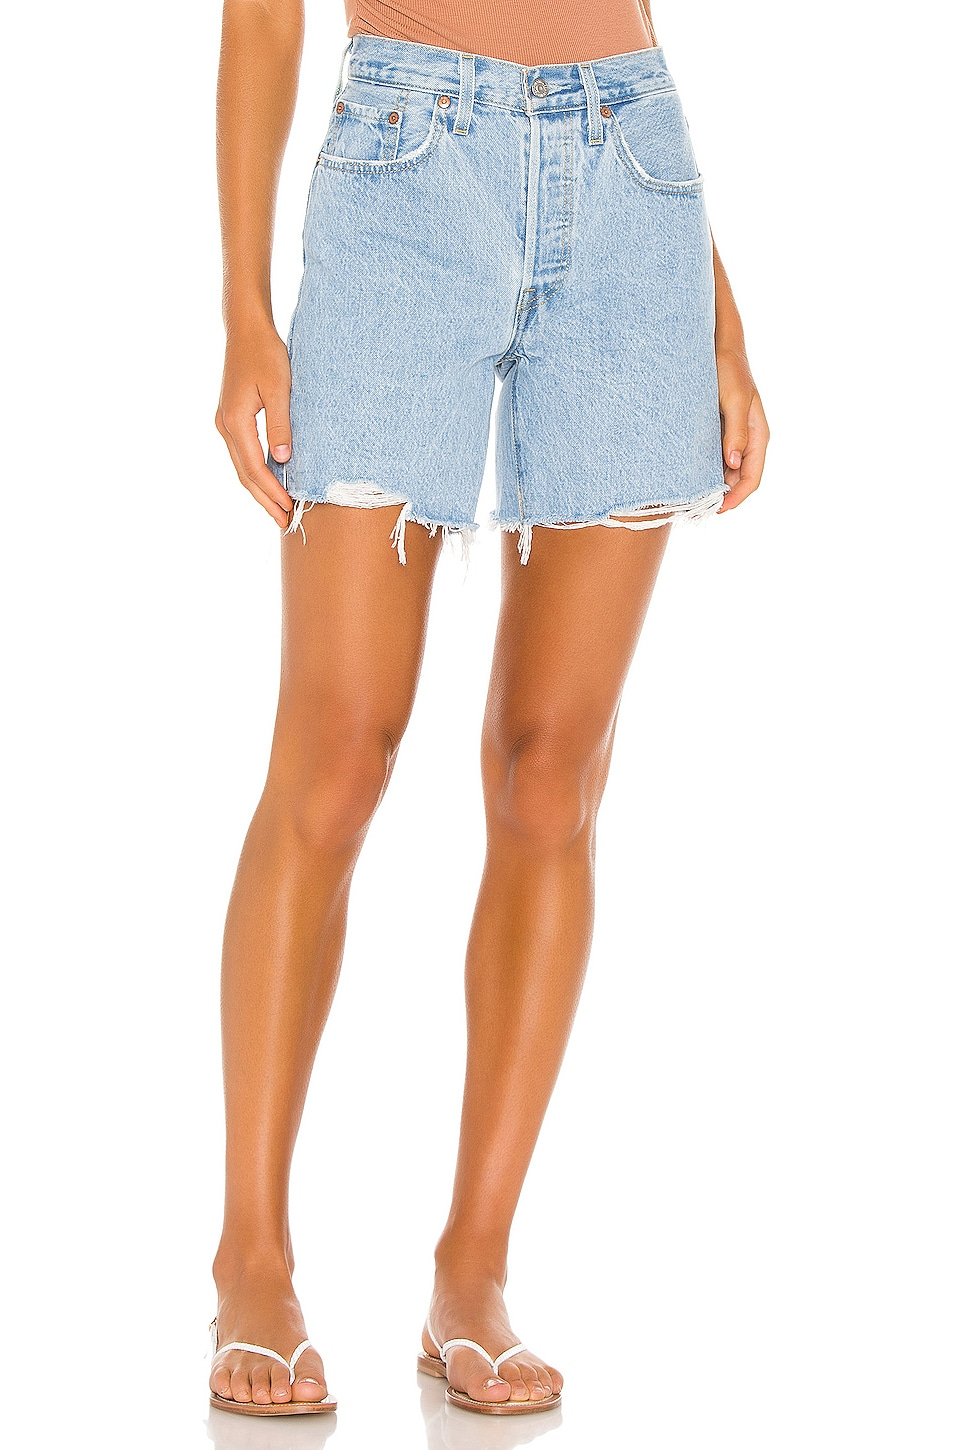 501 Mid Thigh Short             LEVI'S                                                                                                       CA$ 94.58 10